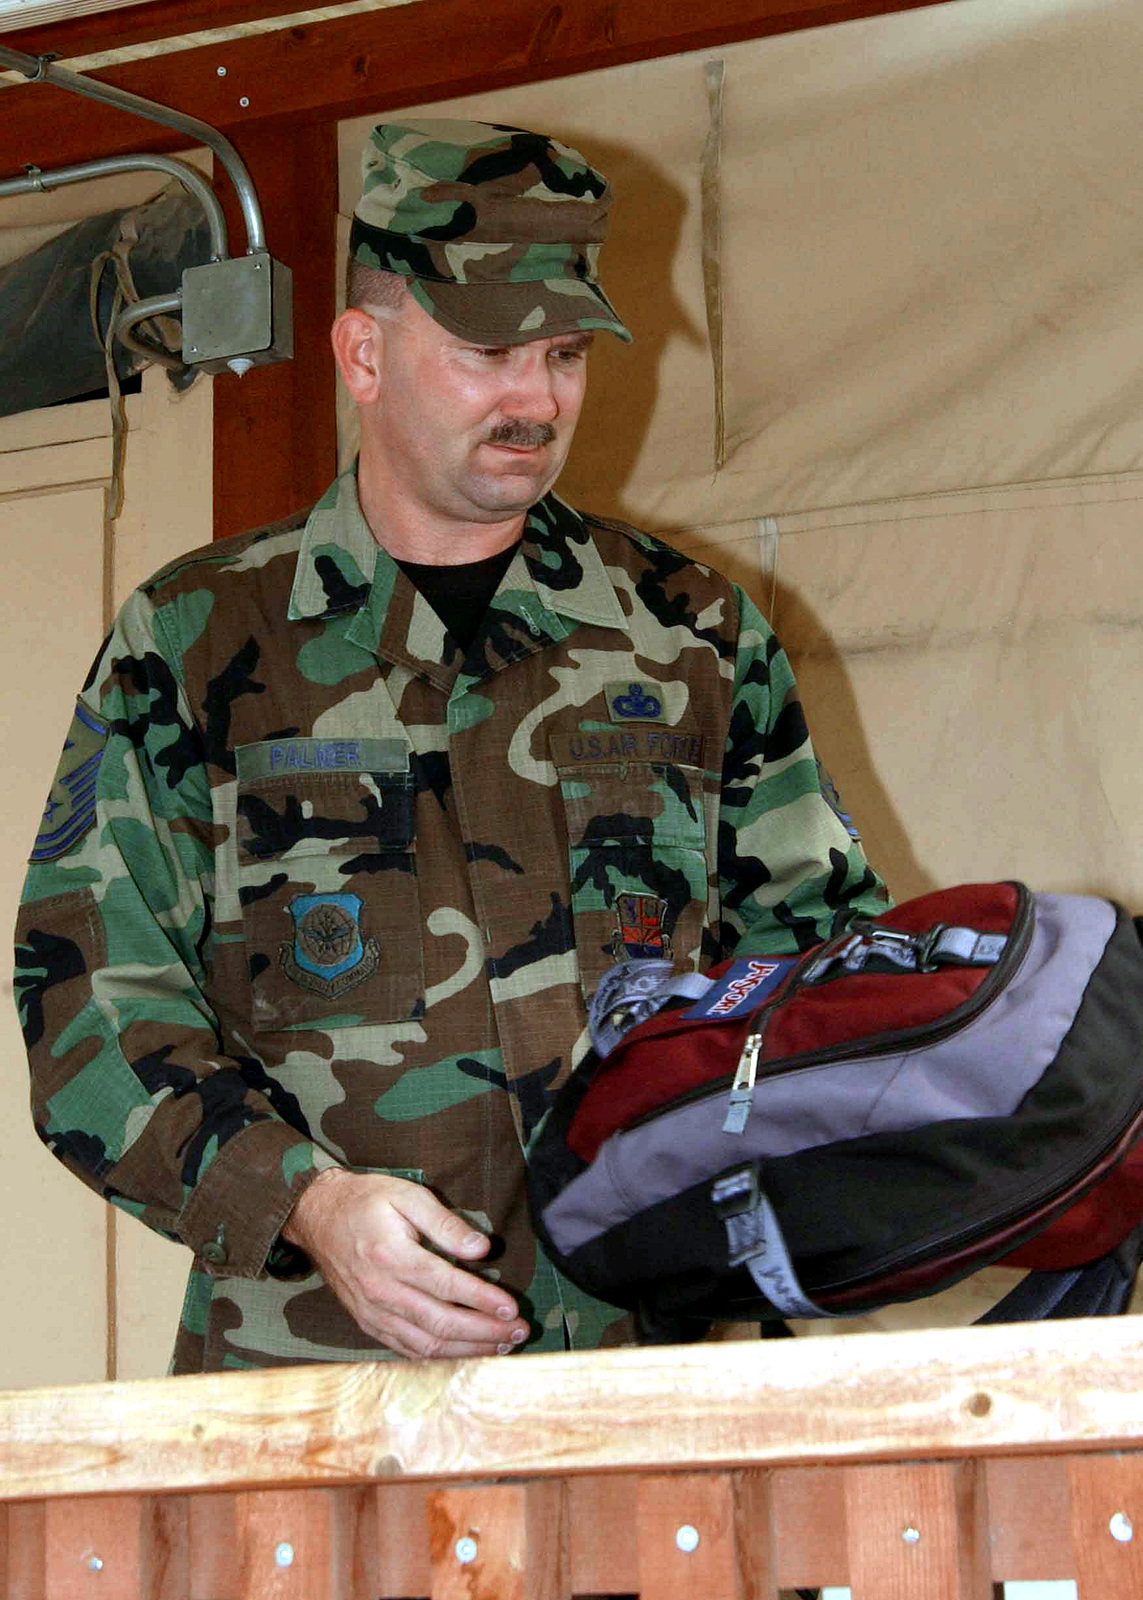 US Air Force (USAF) MASTER Sergeant (MSGT) Dan Palmer, First Sergeant, 161st Expeditionary Air Refueling Group (EARG), makes an inspection in tent city at Incirlik Air Base (AB), Turkey, while deployed in support of operation NORTHERN WATCH